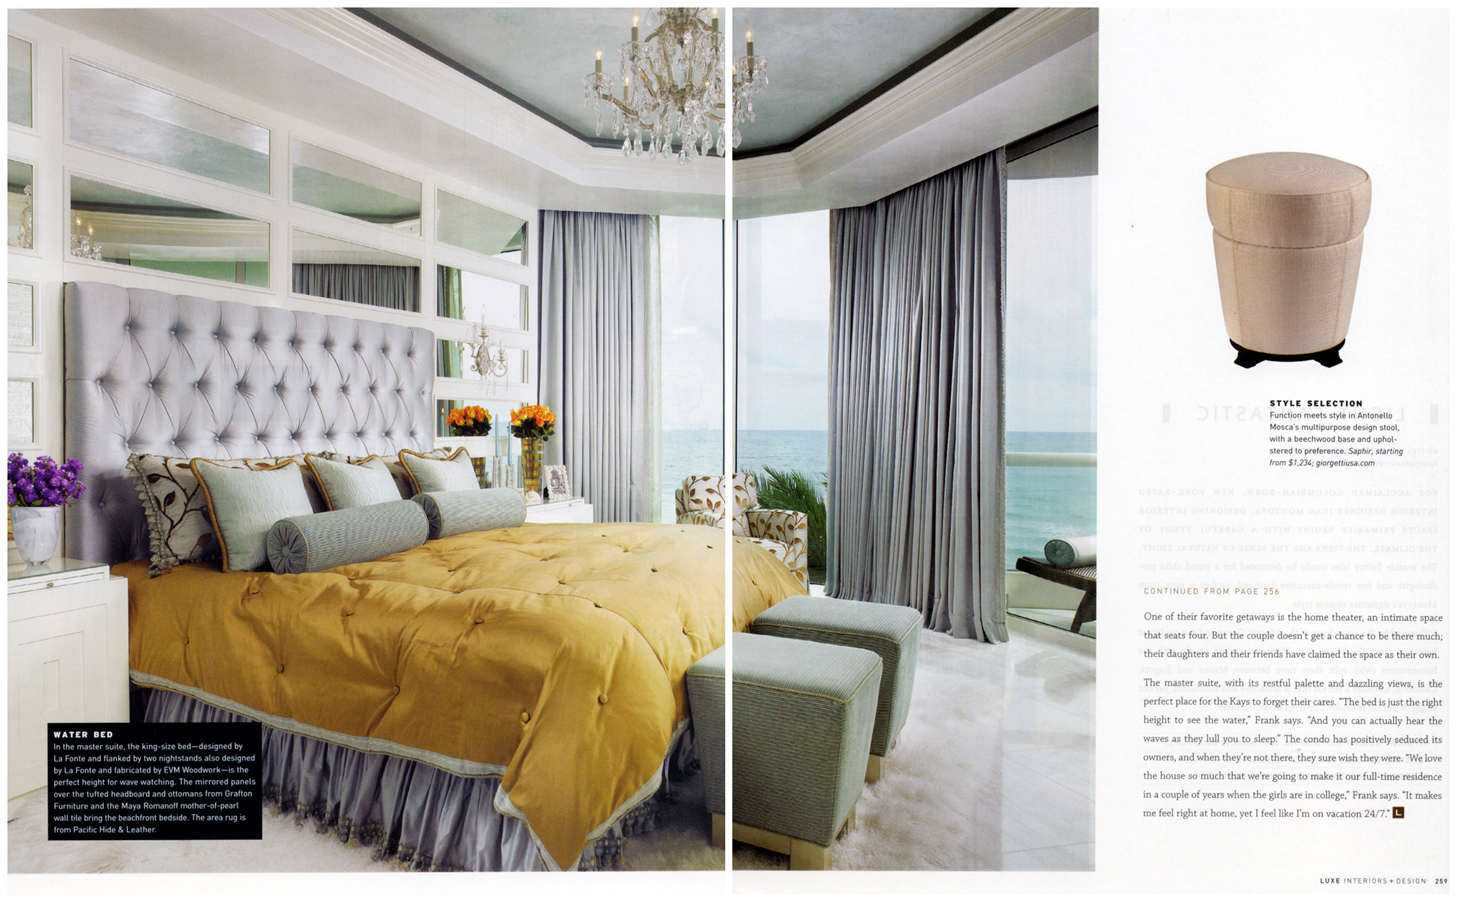 Luxe interiors design south florida luxury liner for Luxe interieur design